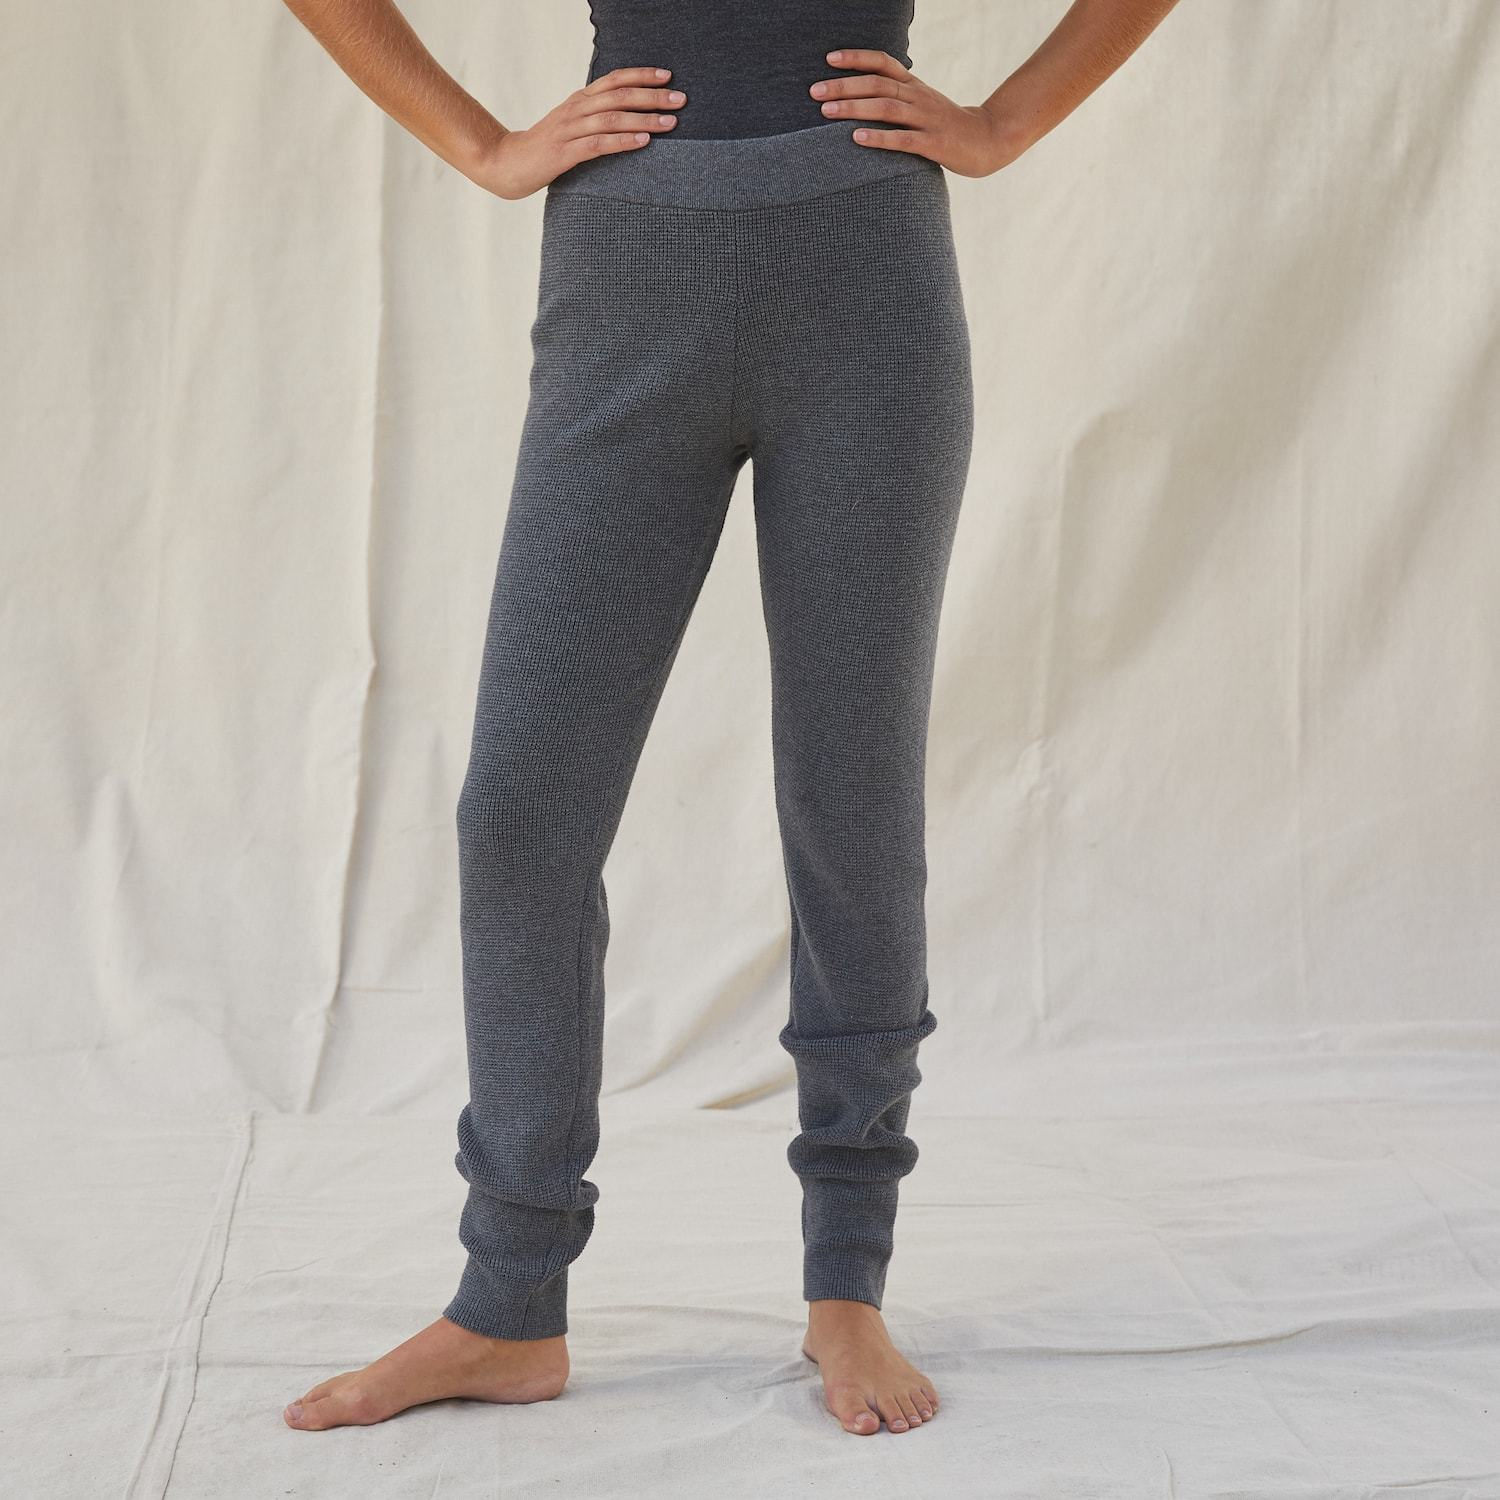 Lunya Sleepwear Cozy Cotton Silk Waffle Slim Pant - #Shadow